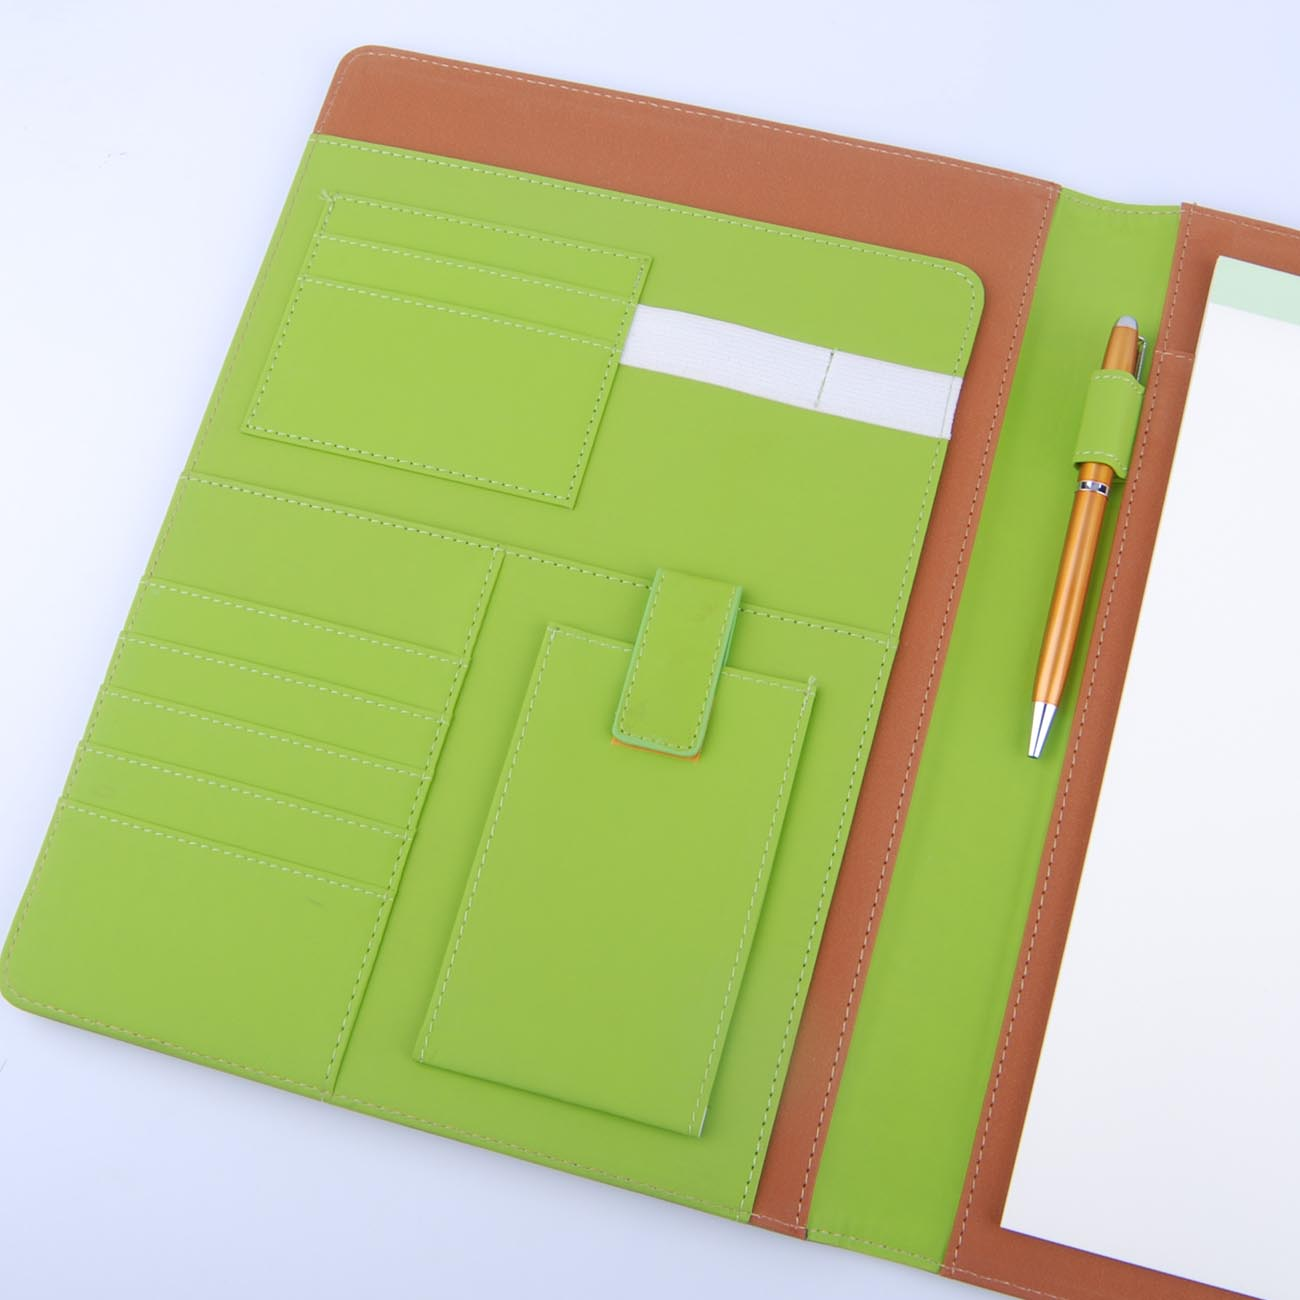 http://www.best-notebook.com/data/images/product/20170904113338_931.jpg